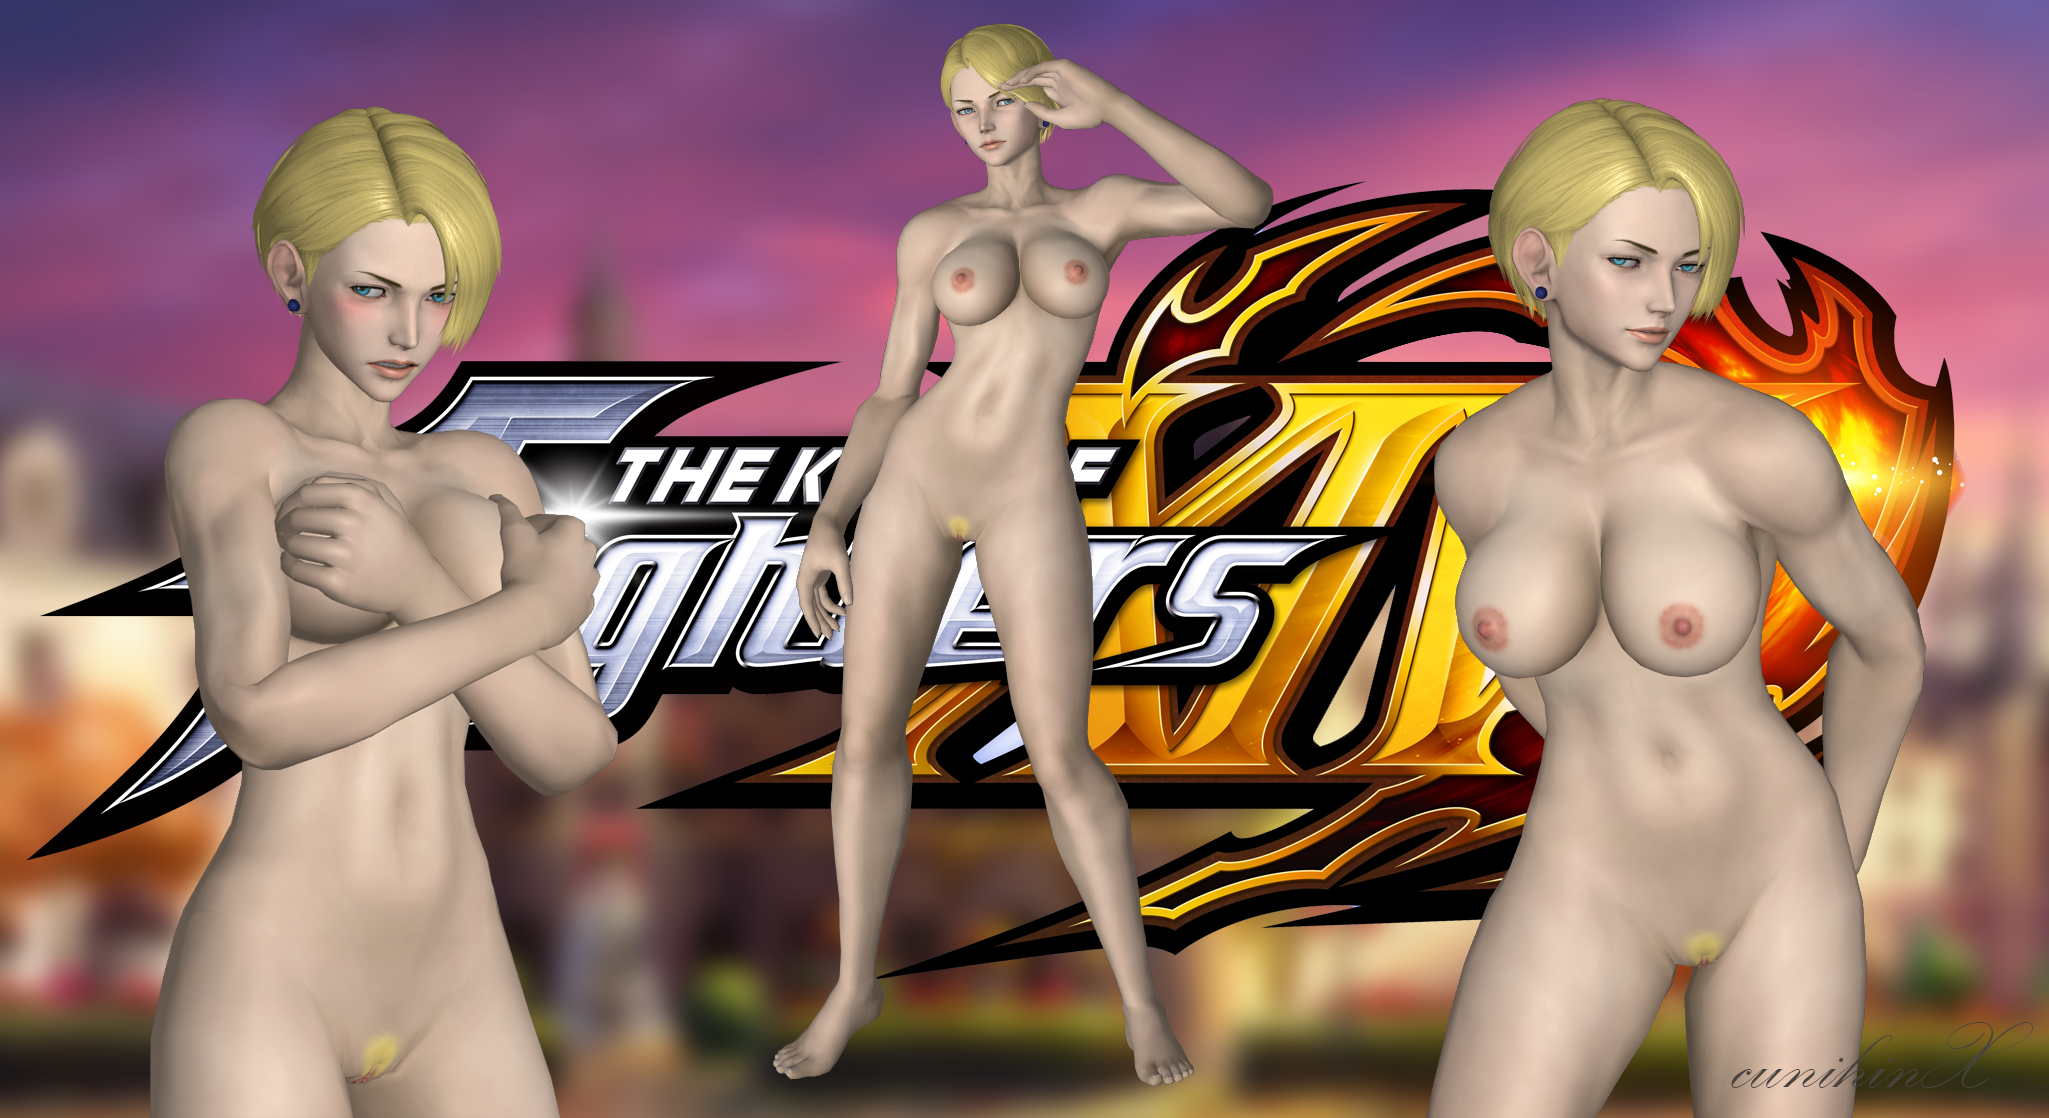 king of fighter naked